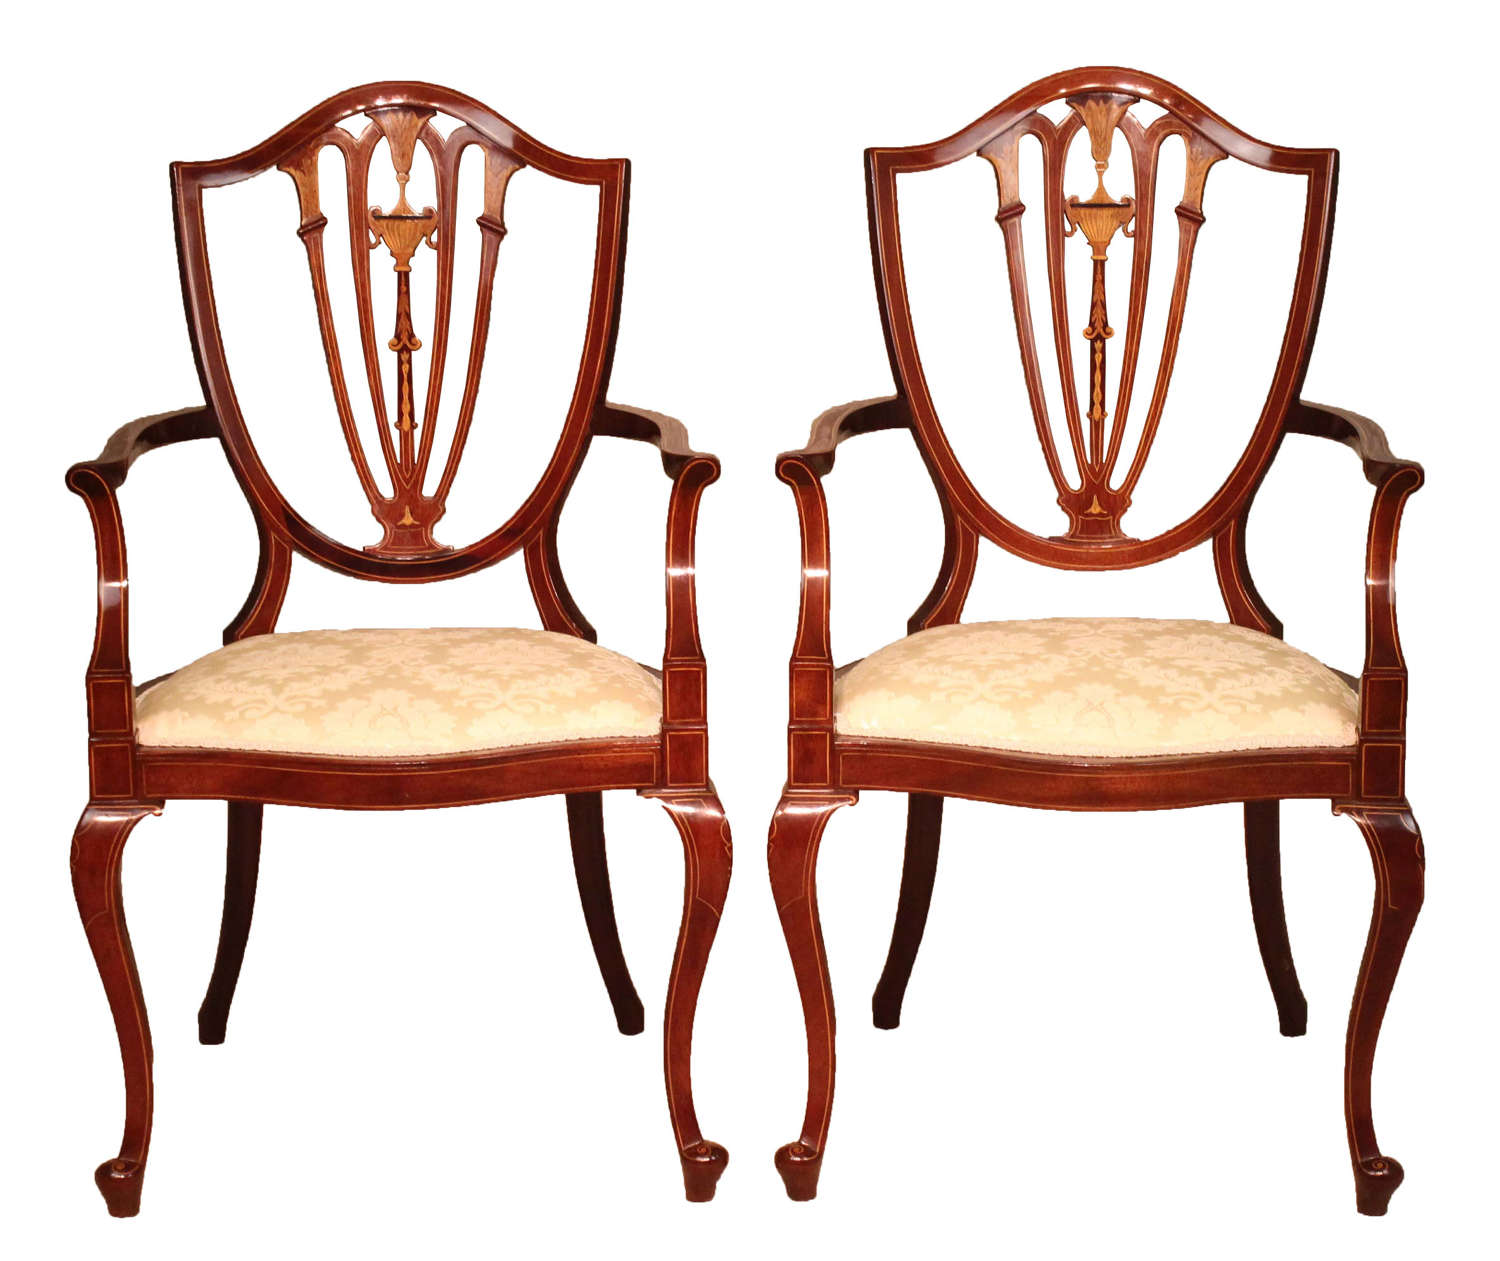 A Pair of Late Victorian Mahogany inlaid shield back armchairs